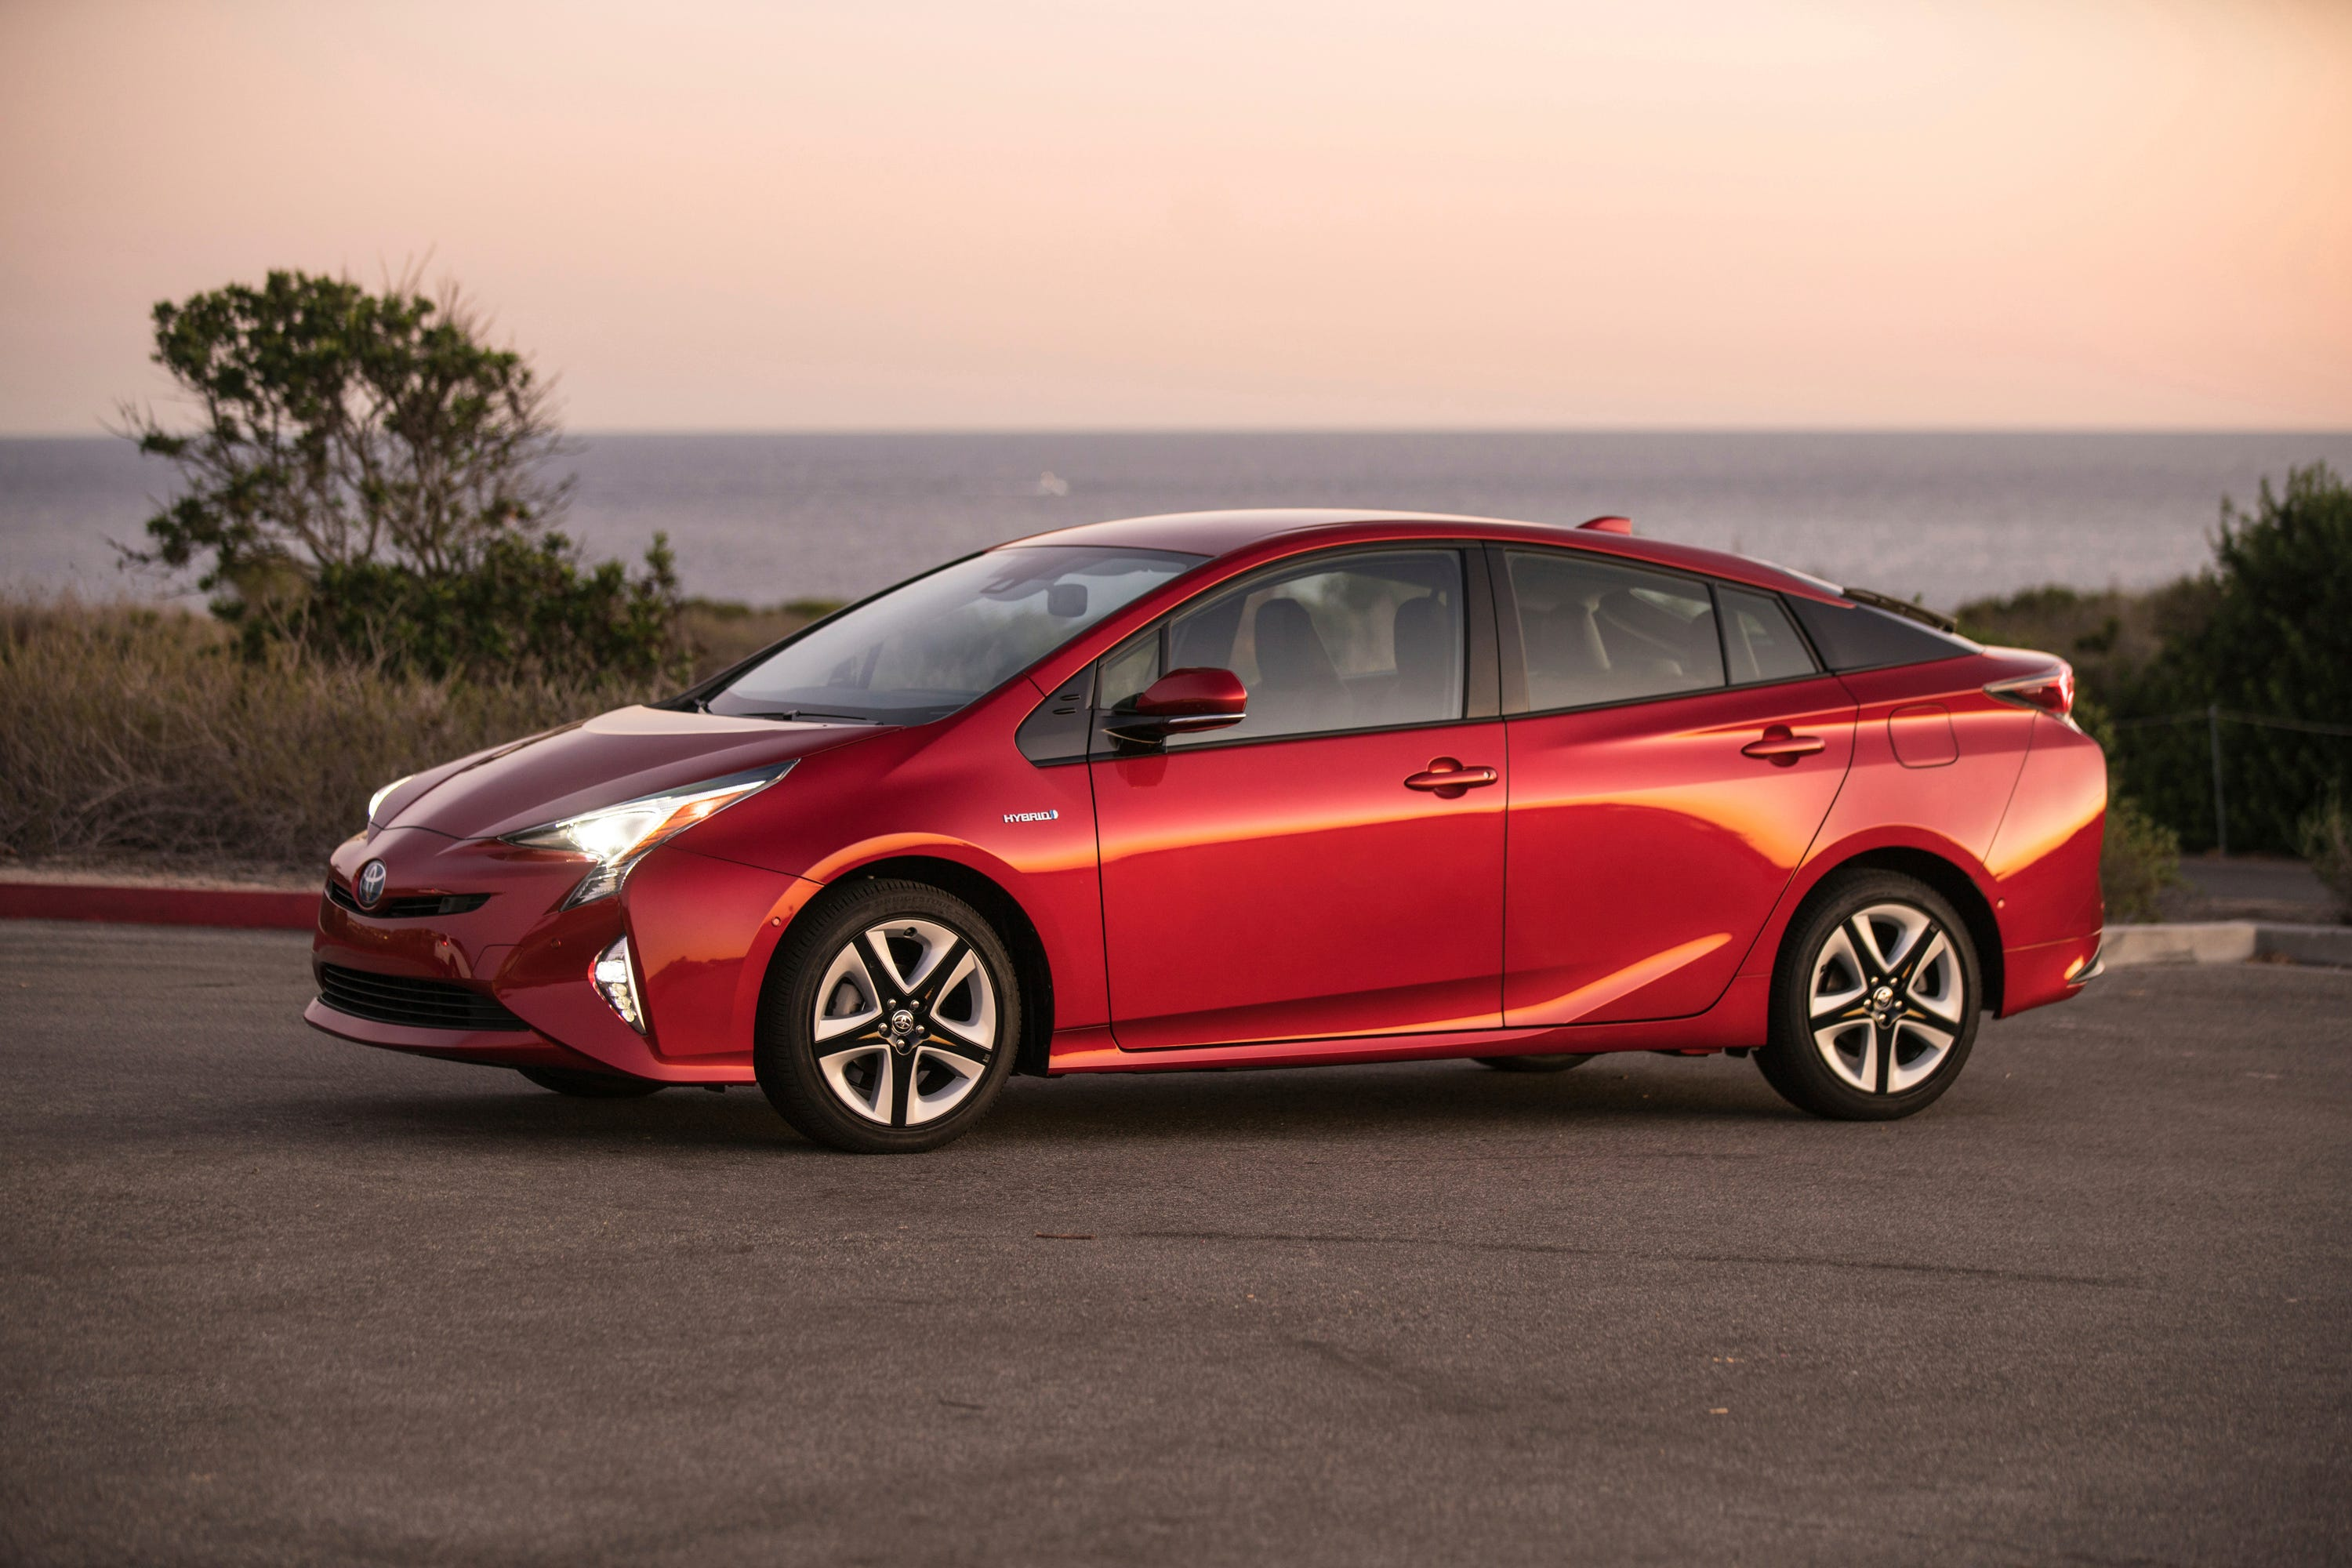 toyota recalls prius to fix defect that could trigger fires rh usatoday com BMW Battery Wiring Harness BMW Seat Wiring Harness Diagram